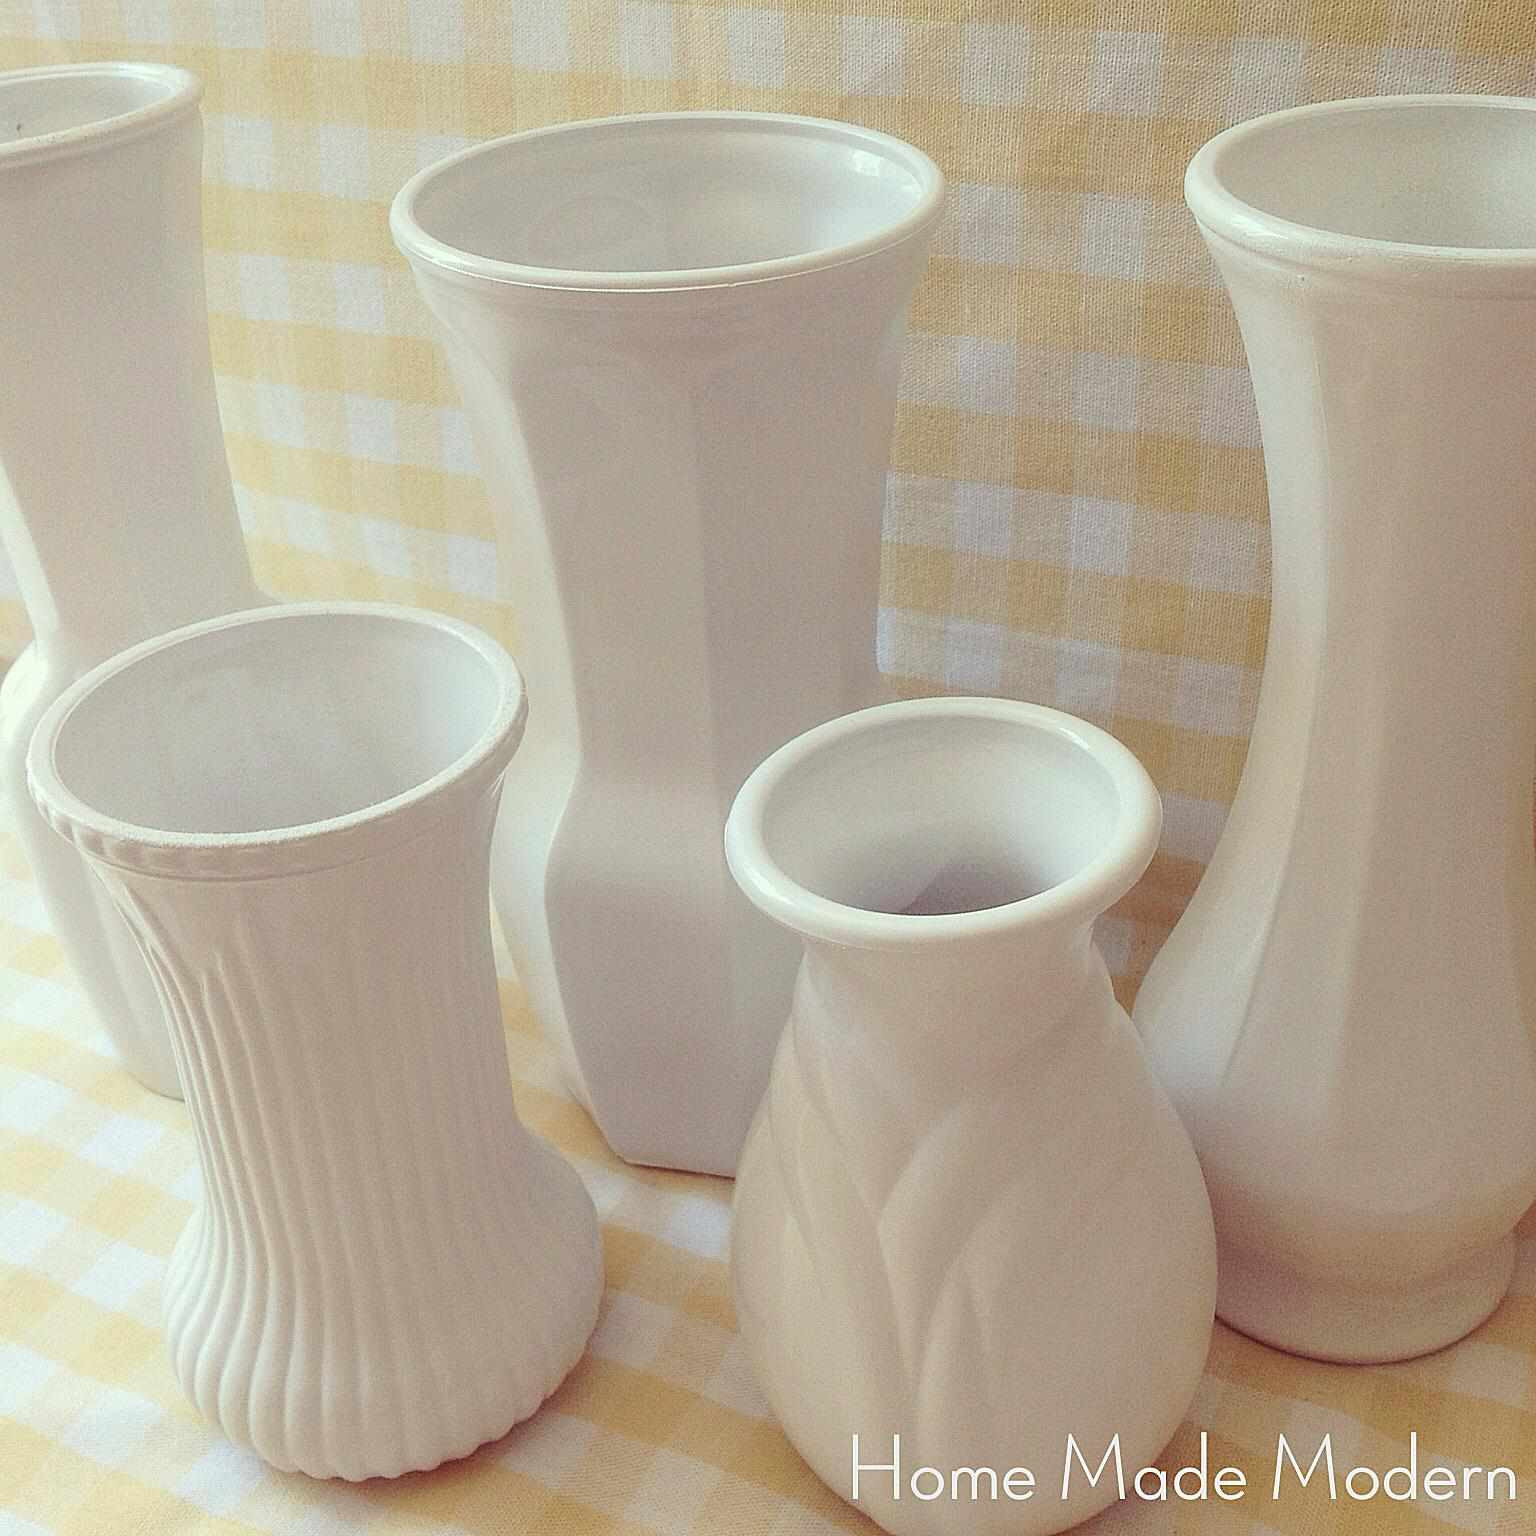 milk glass vases wholesale of 12 things you shouldnt throw away regarding all those lack luster florist vases